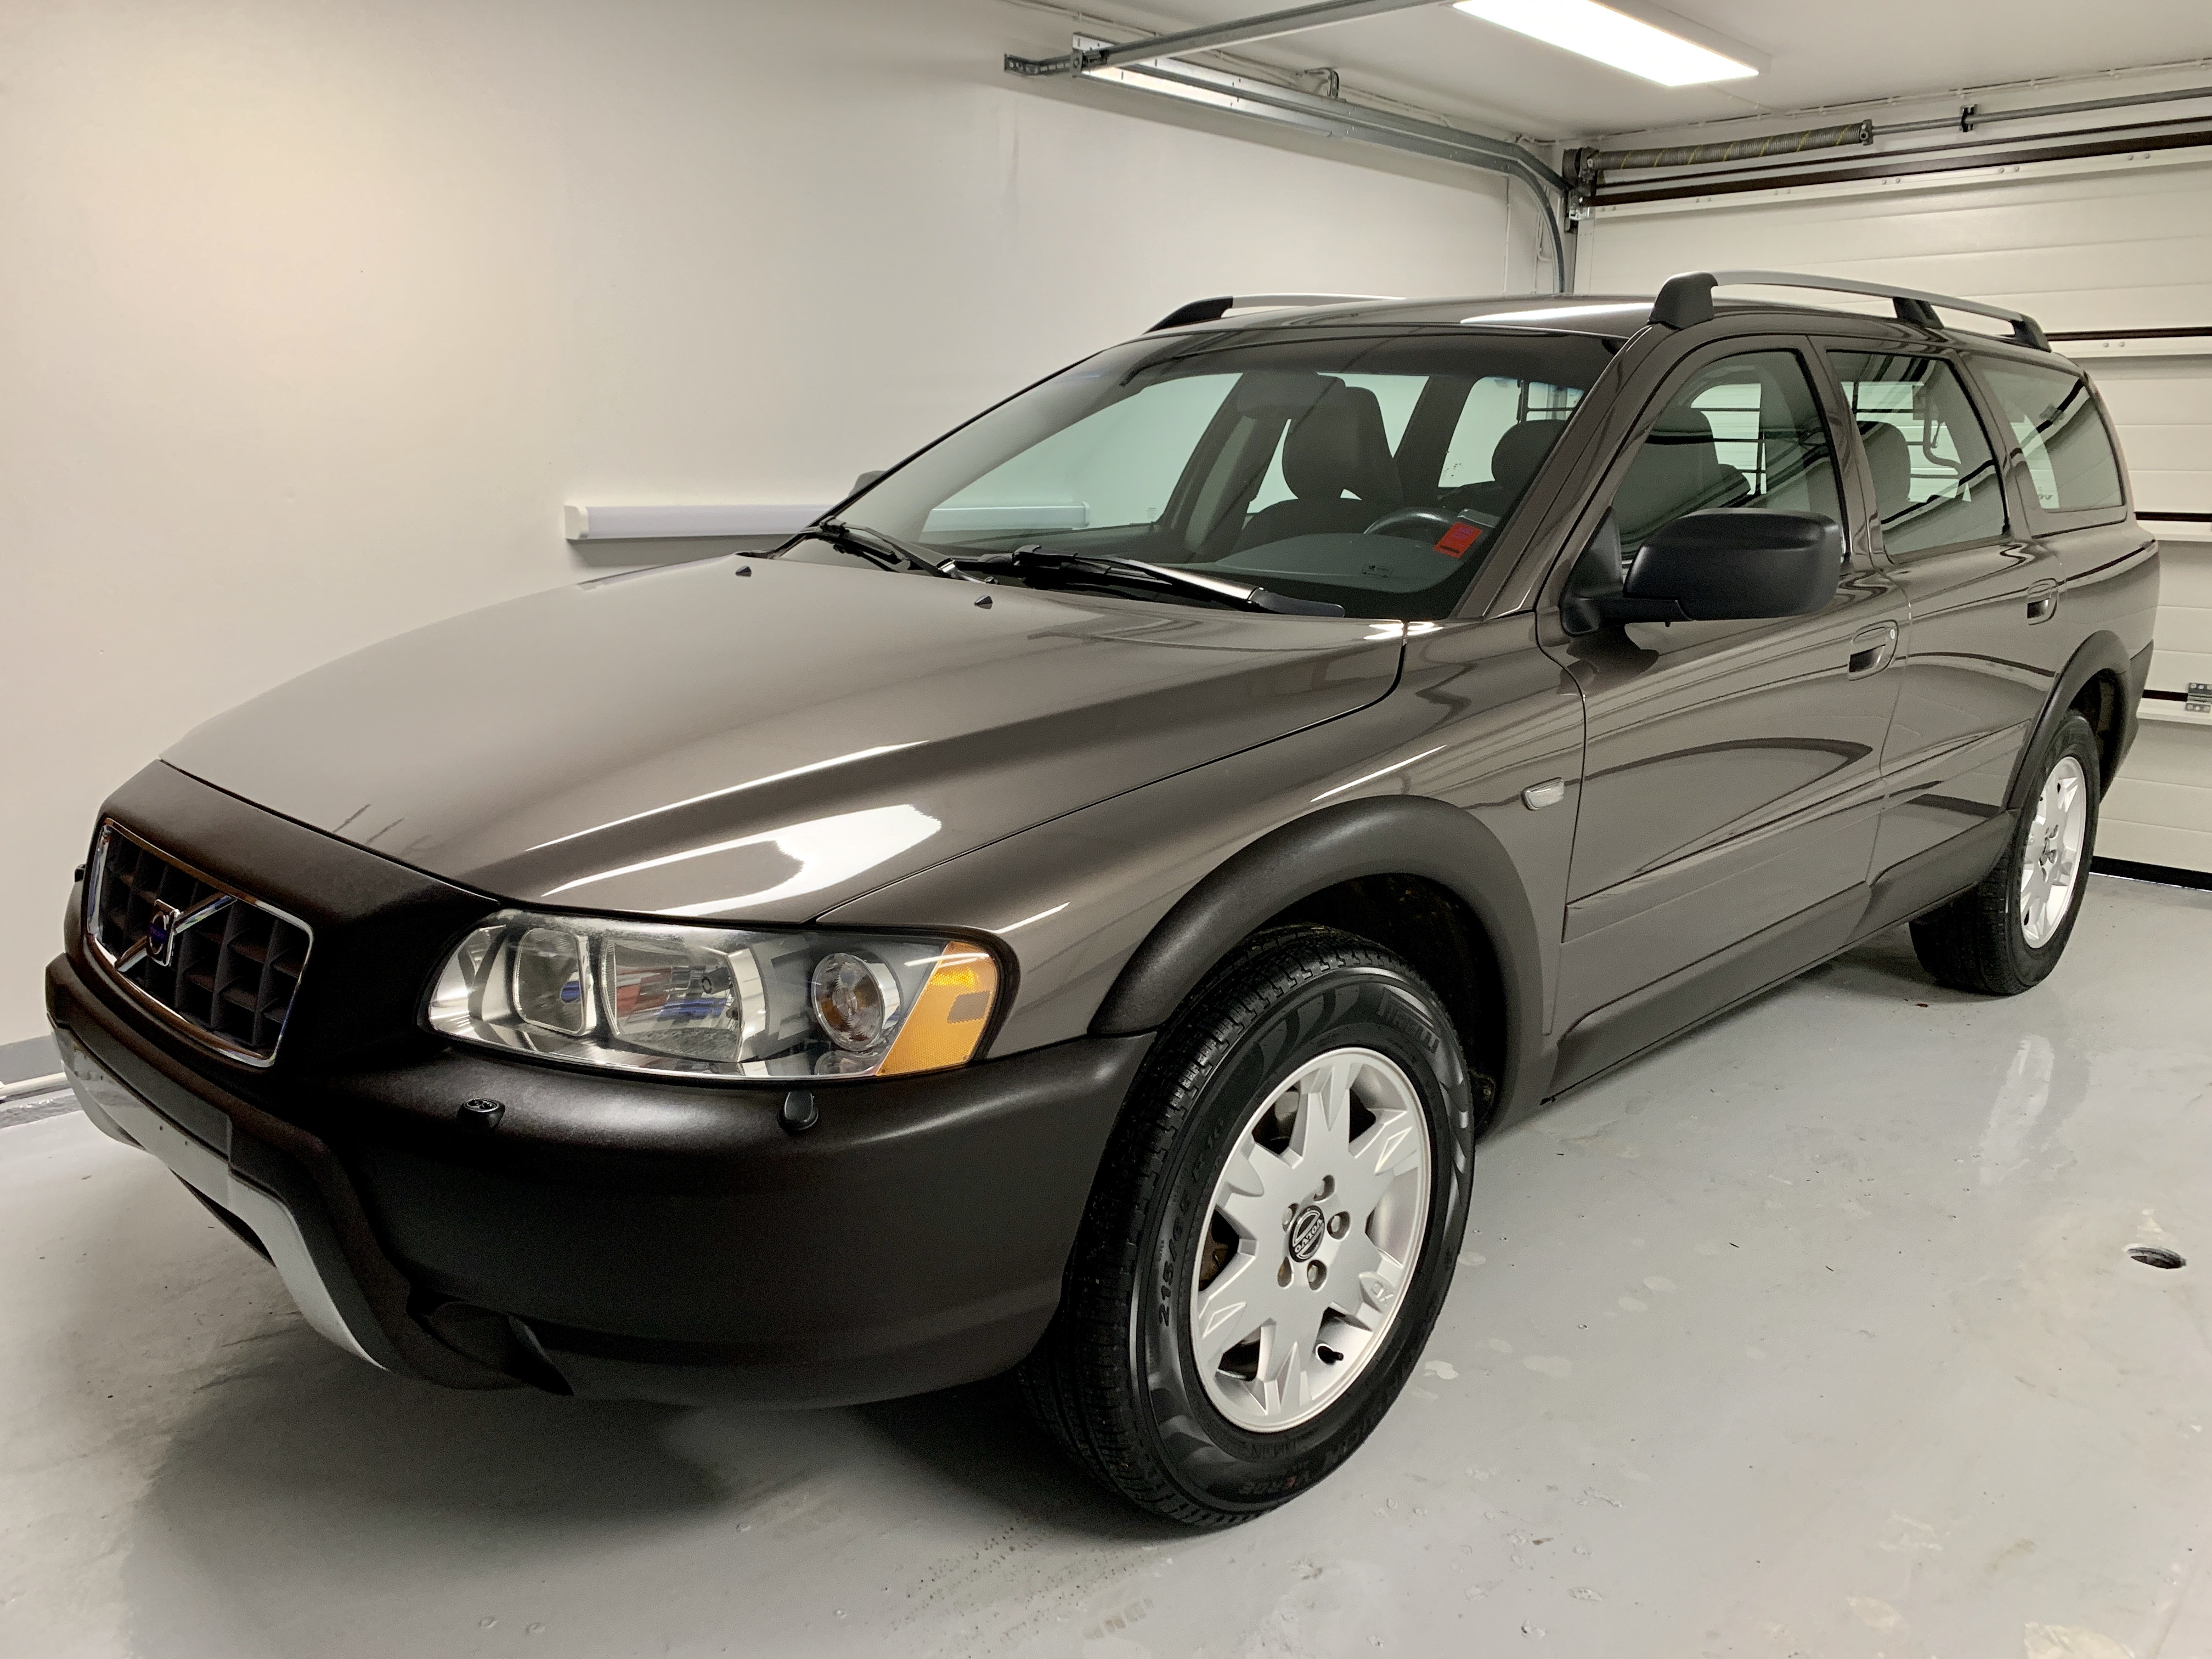 VOLVO XC70 2.5T AUT AWD CrossCountry